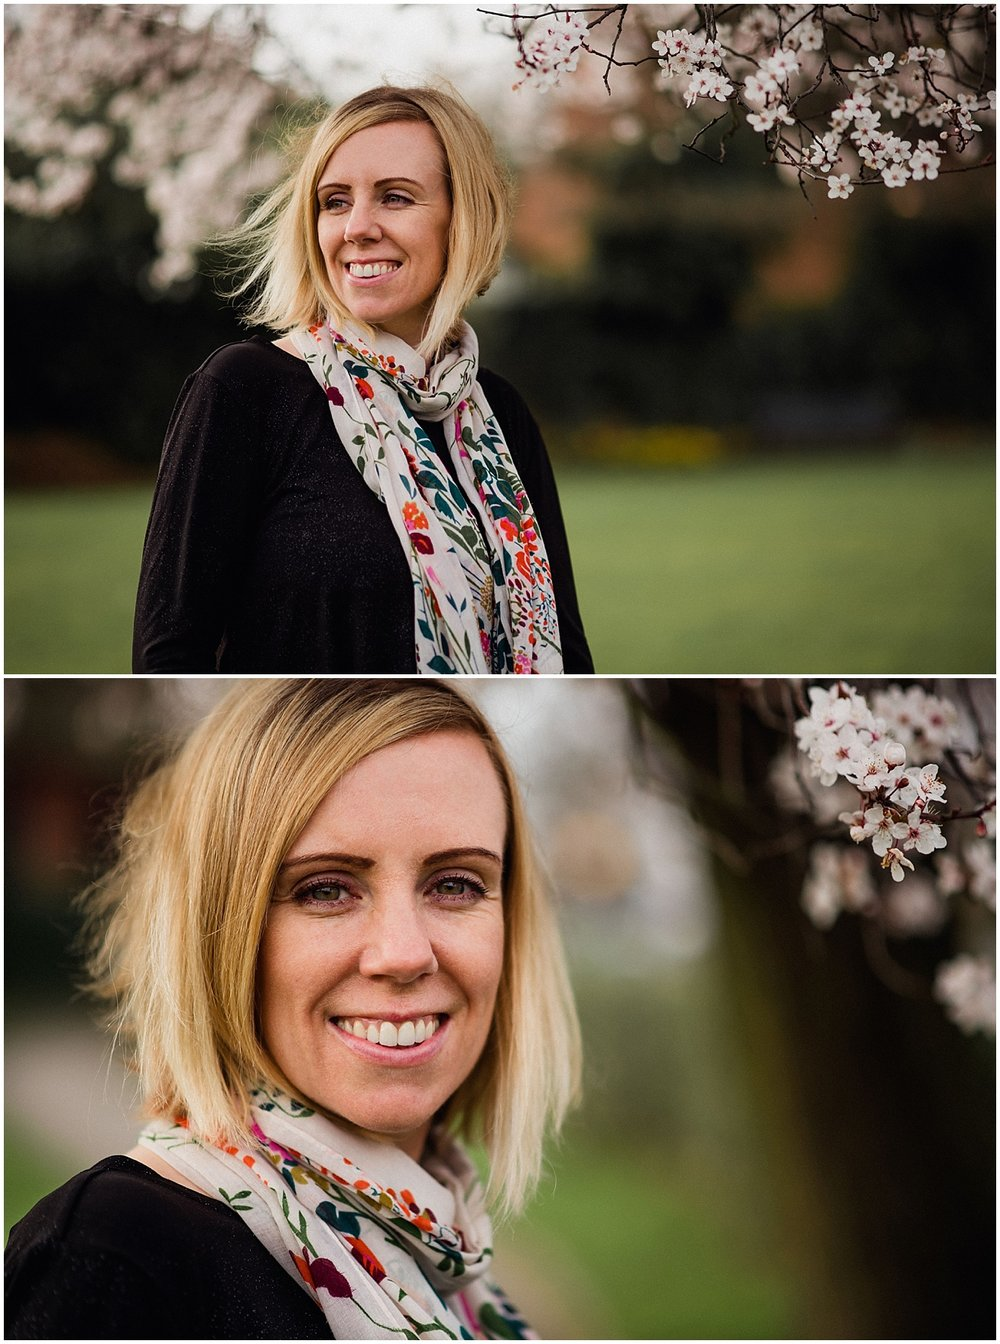 portrait photographer in london